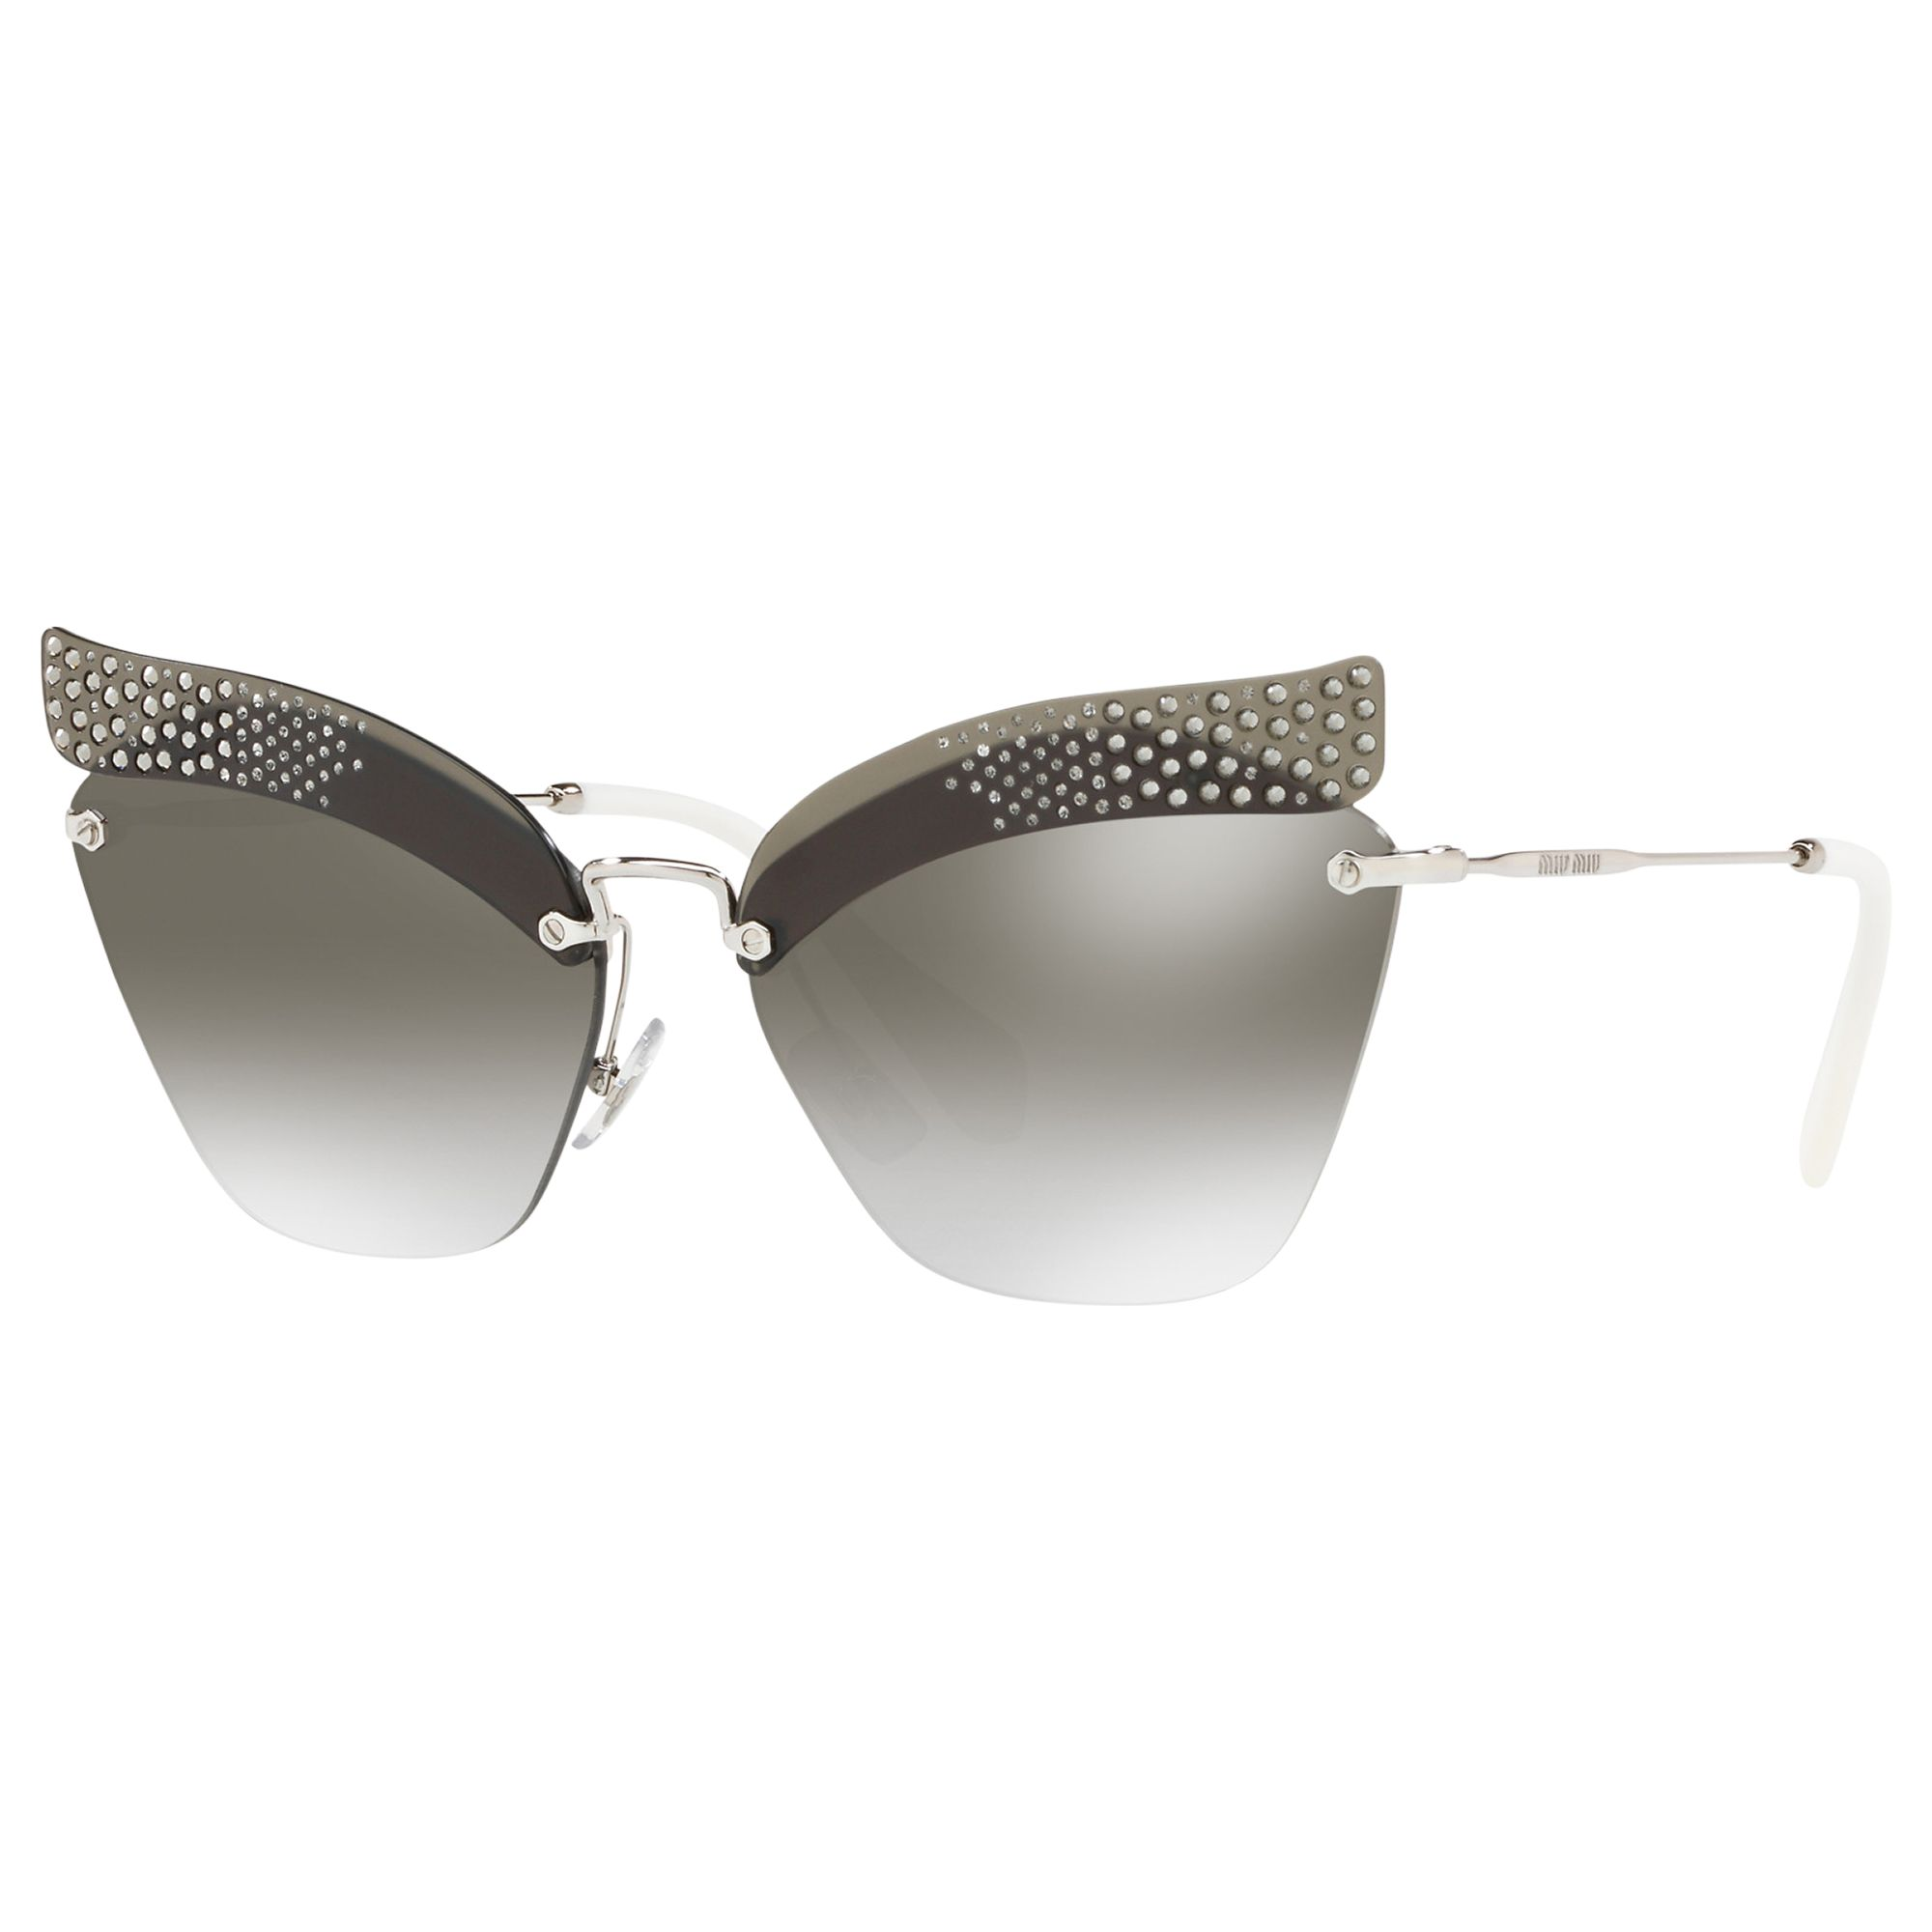 Miu Miu Miu Miu MU 56TS Rimless Cat's Eye Sunglasses, Silver/Mirror Grey